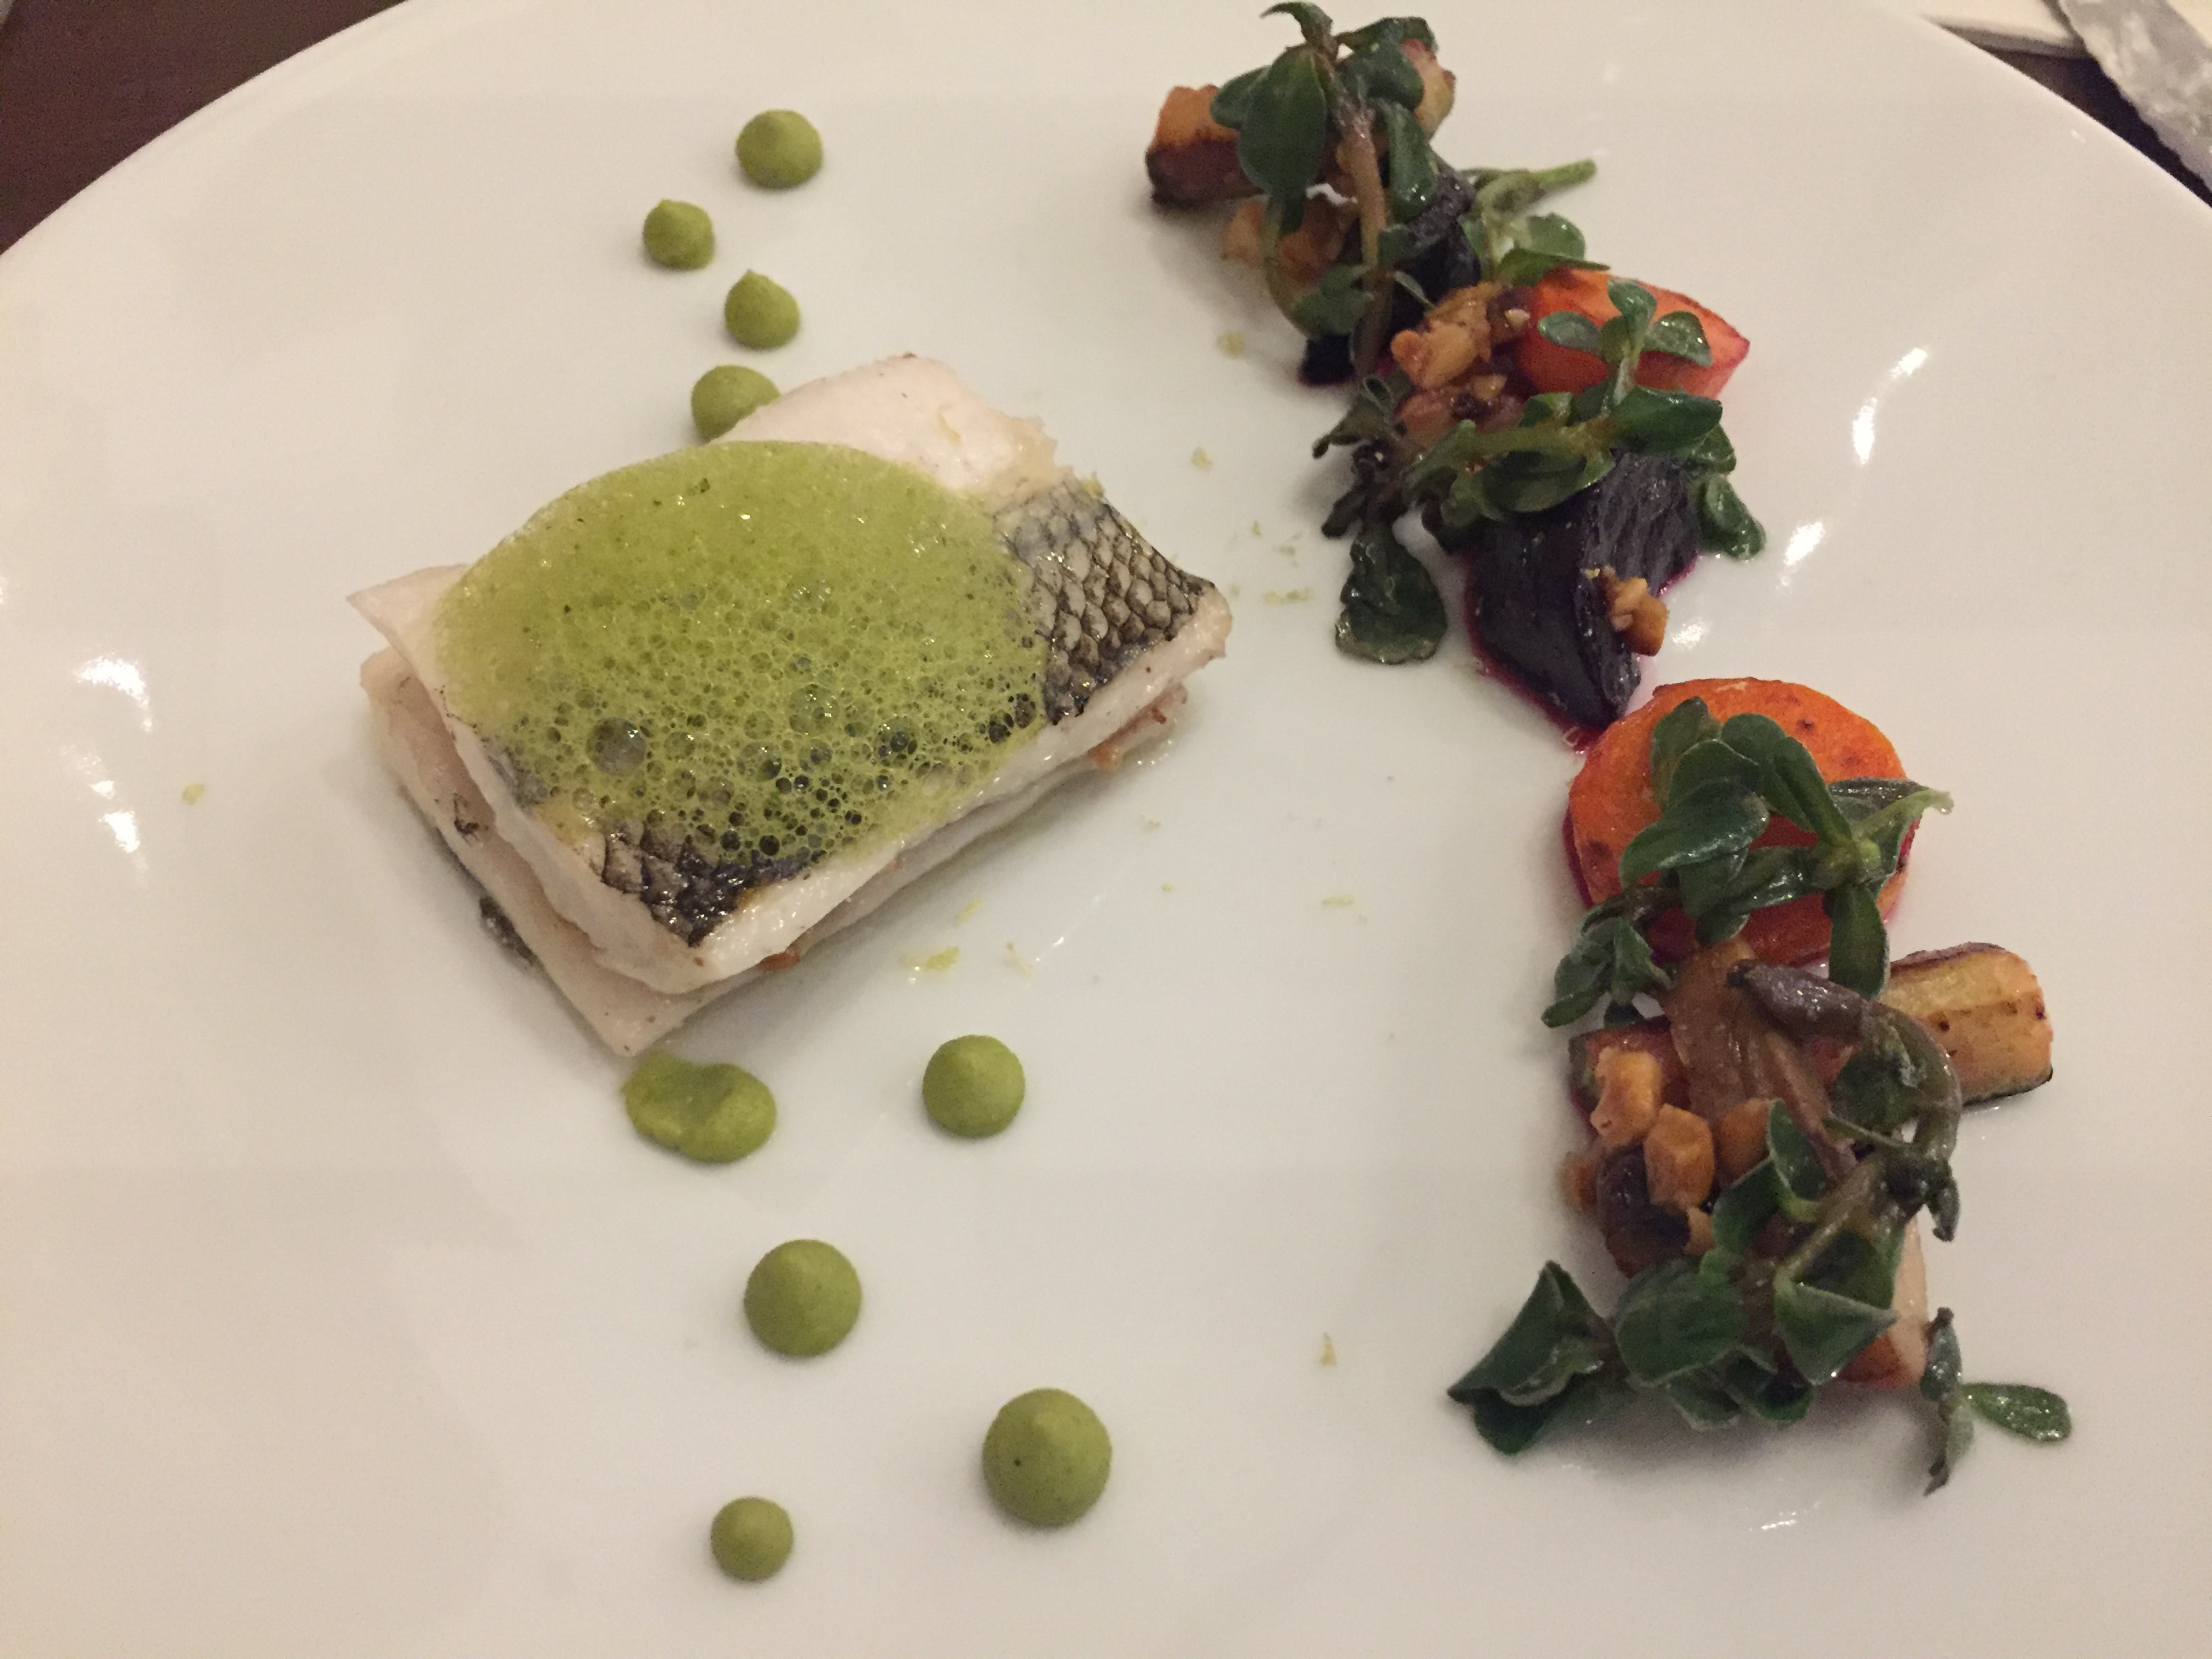 Pejerrey Fish | Haute Cuisine in La Paz, Bolivia at Ona Restaurant in Atix Hotel